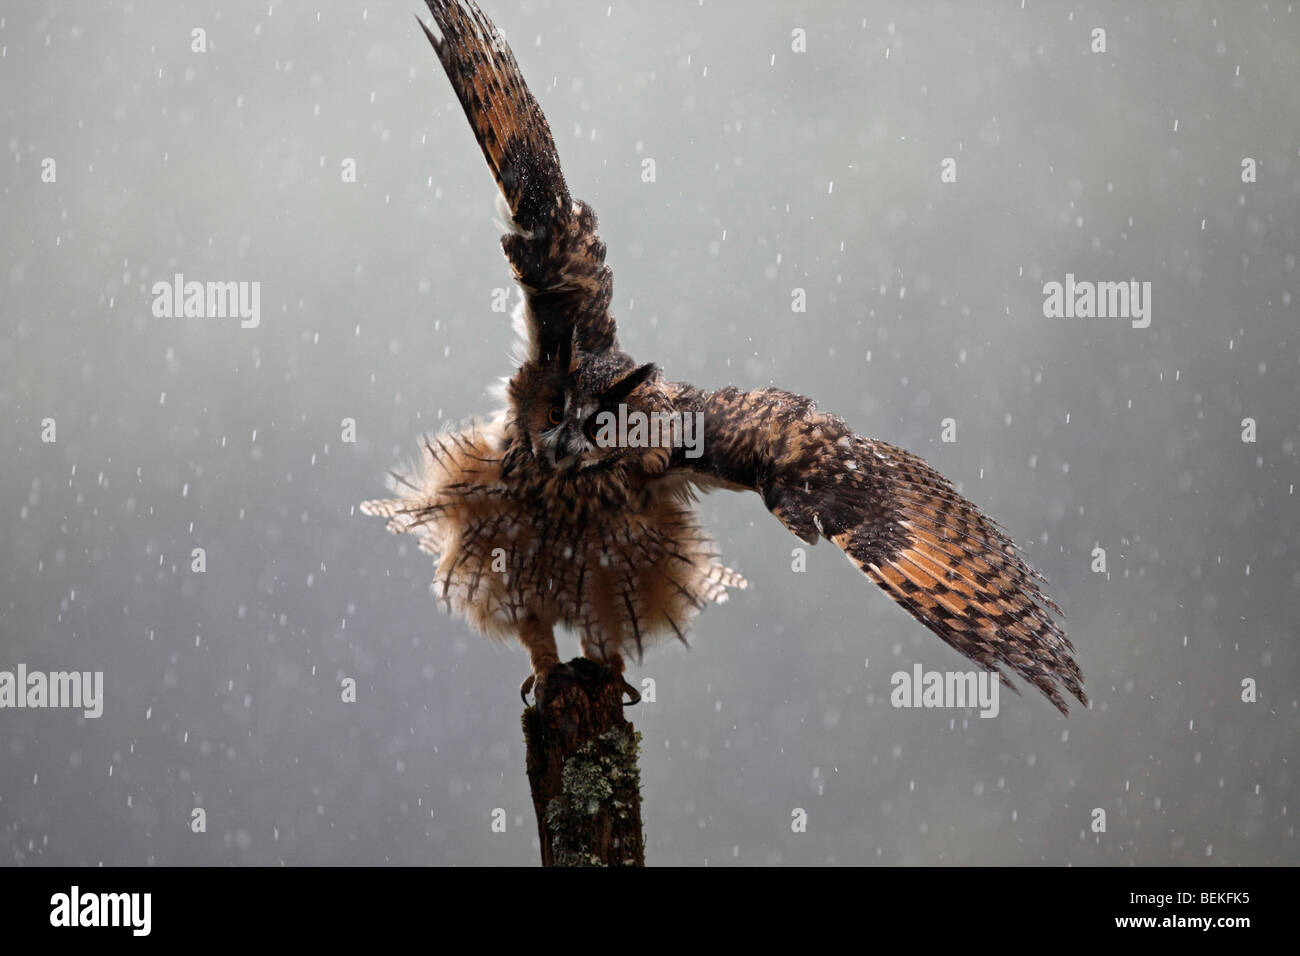 Owl Wings Open Stock Photos Owl Wings Open Stock Images Alamy